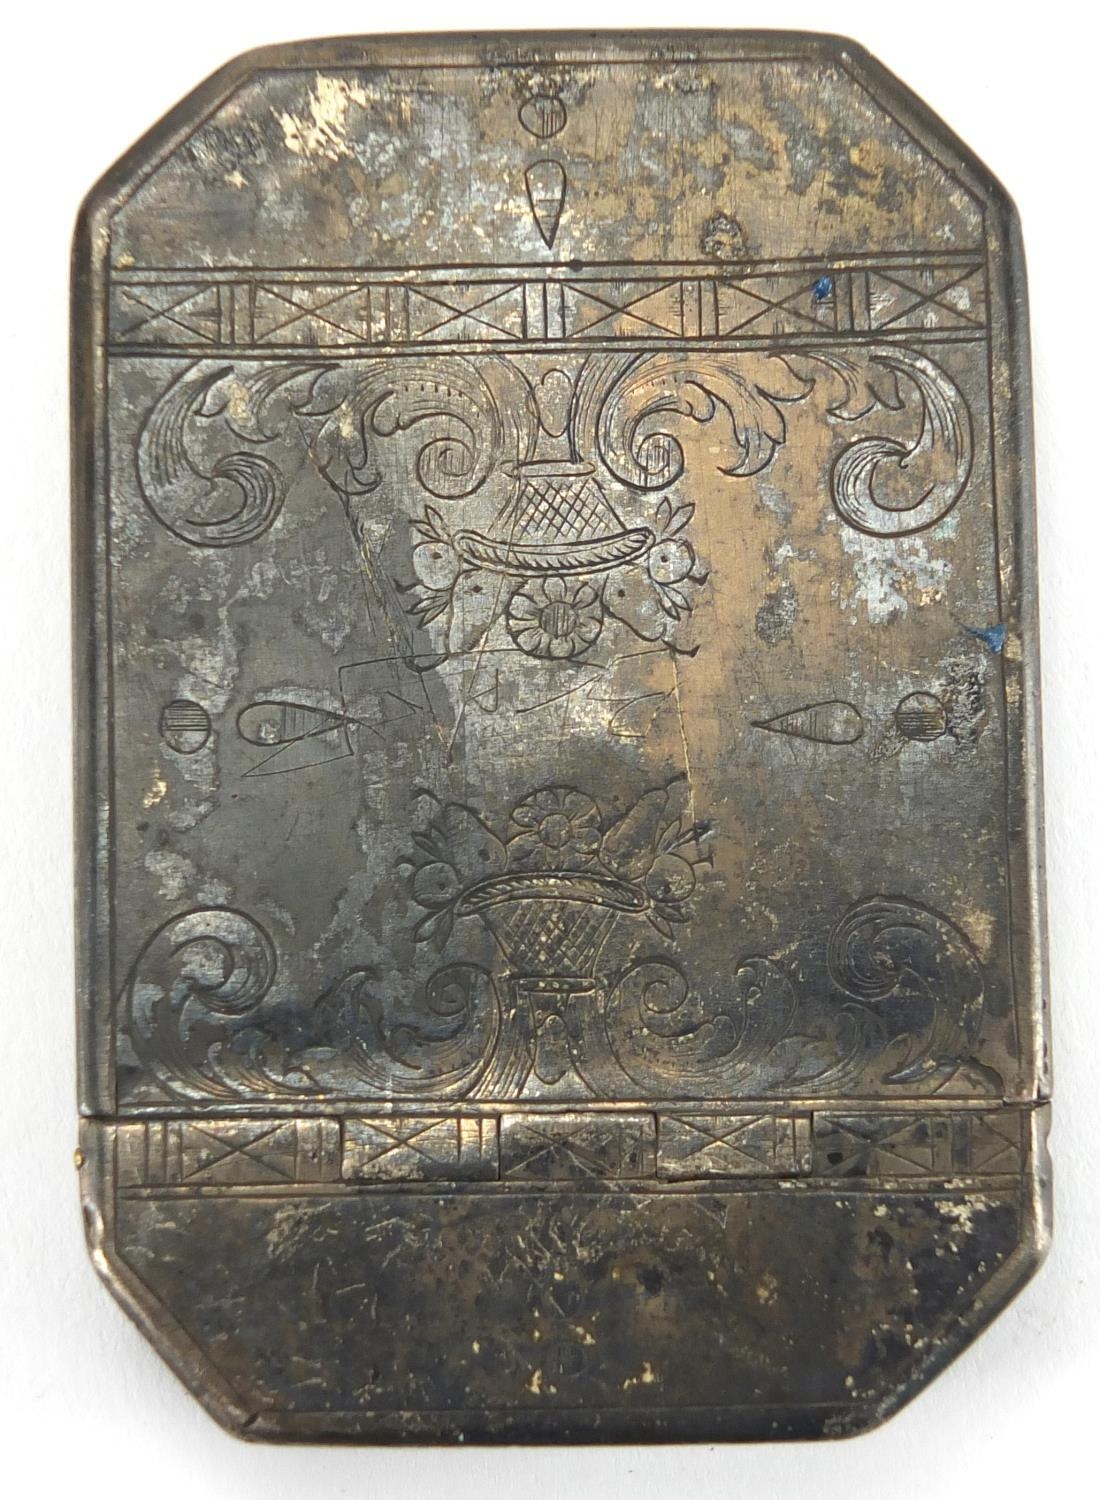 Lot 19 - Antique Continental silver snuff box, the hinged lid with engraved decoration, indistinct